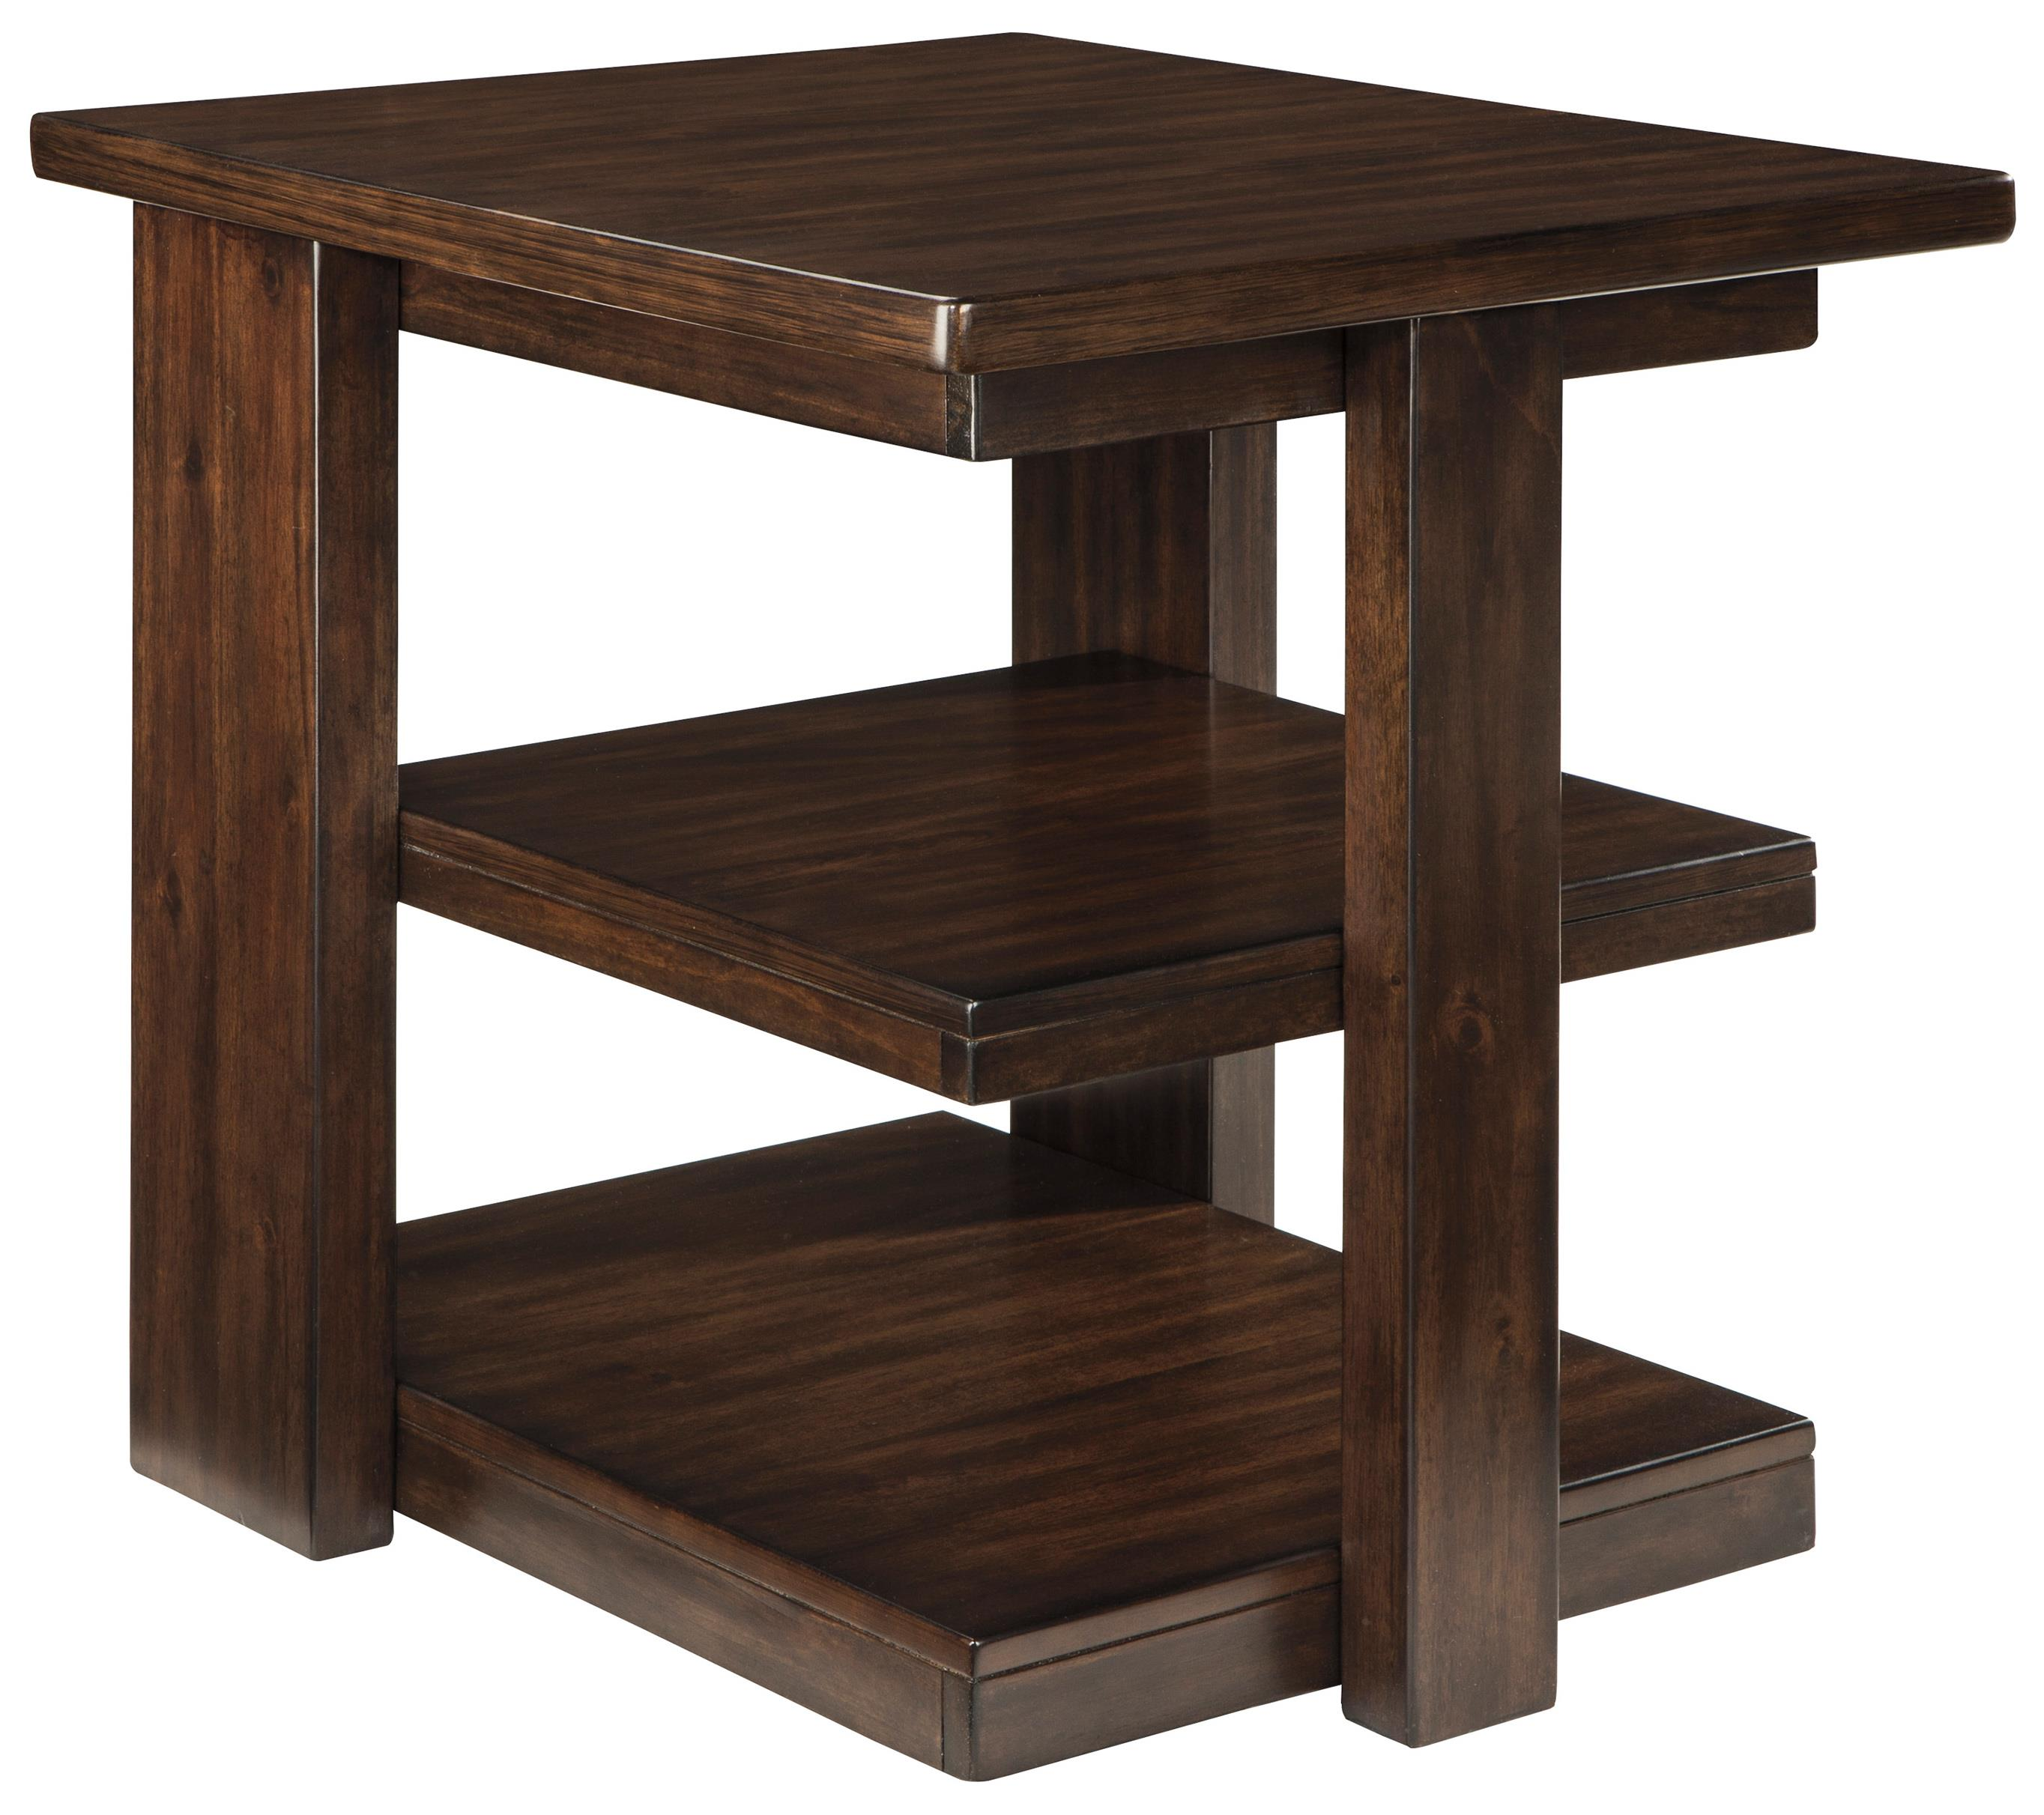 Signature Design by Ashley Garletti Rectangular End Table - Item Number: T787-3